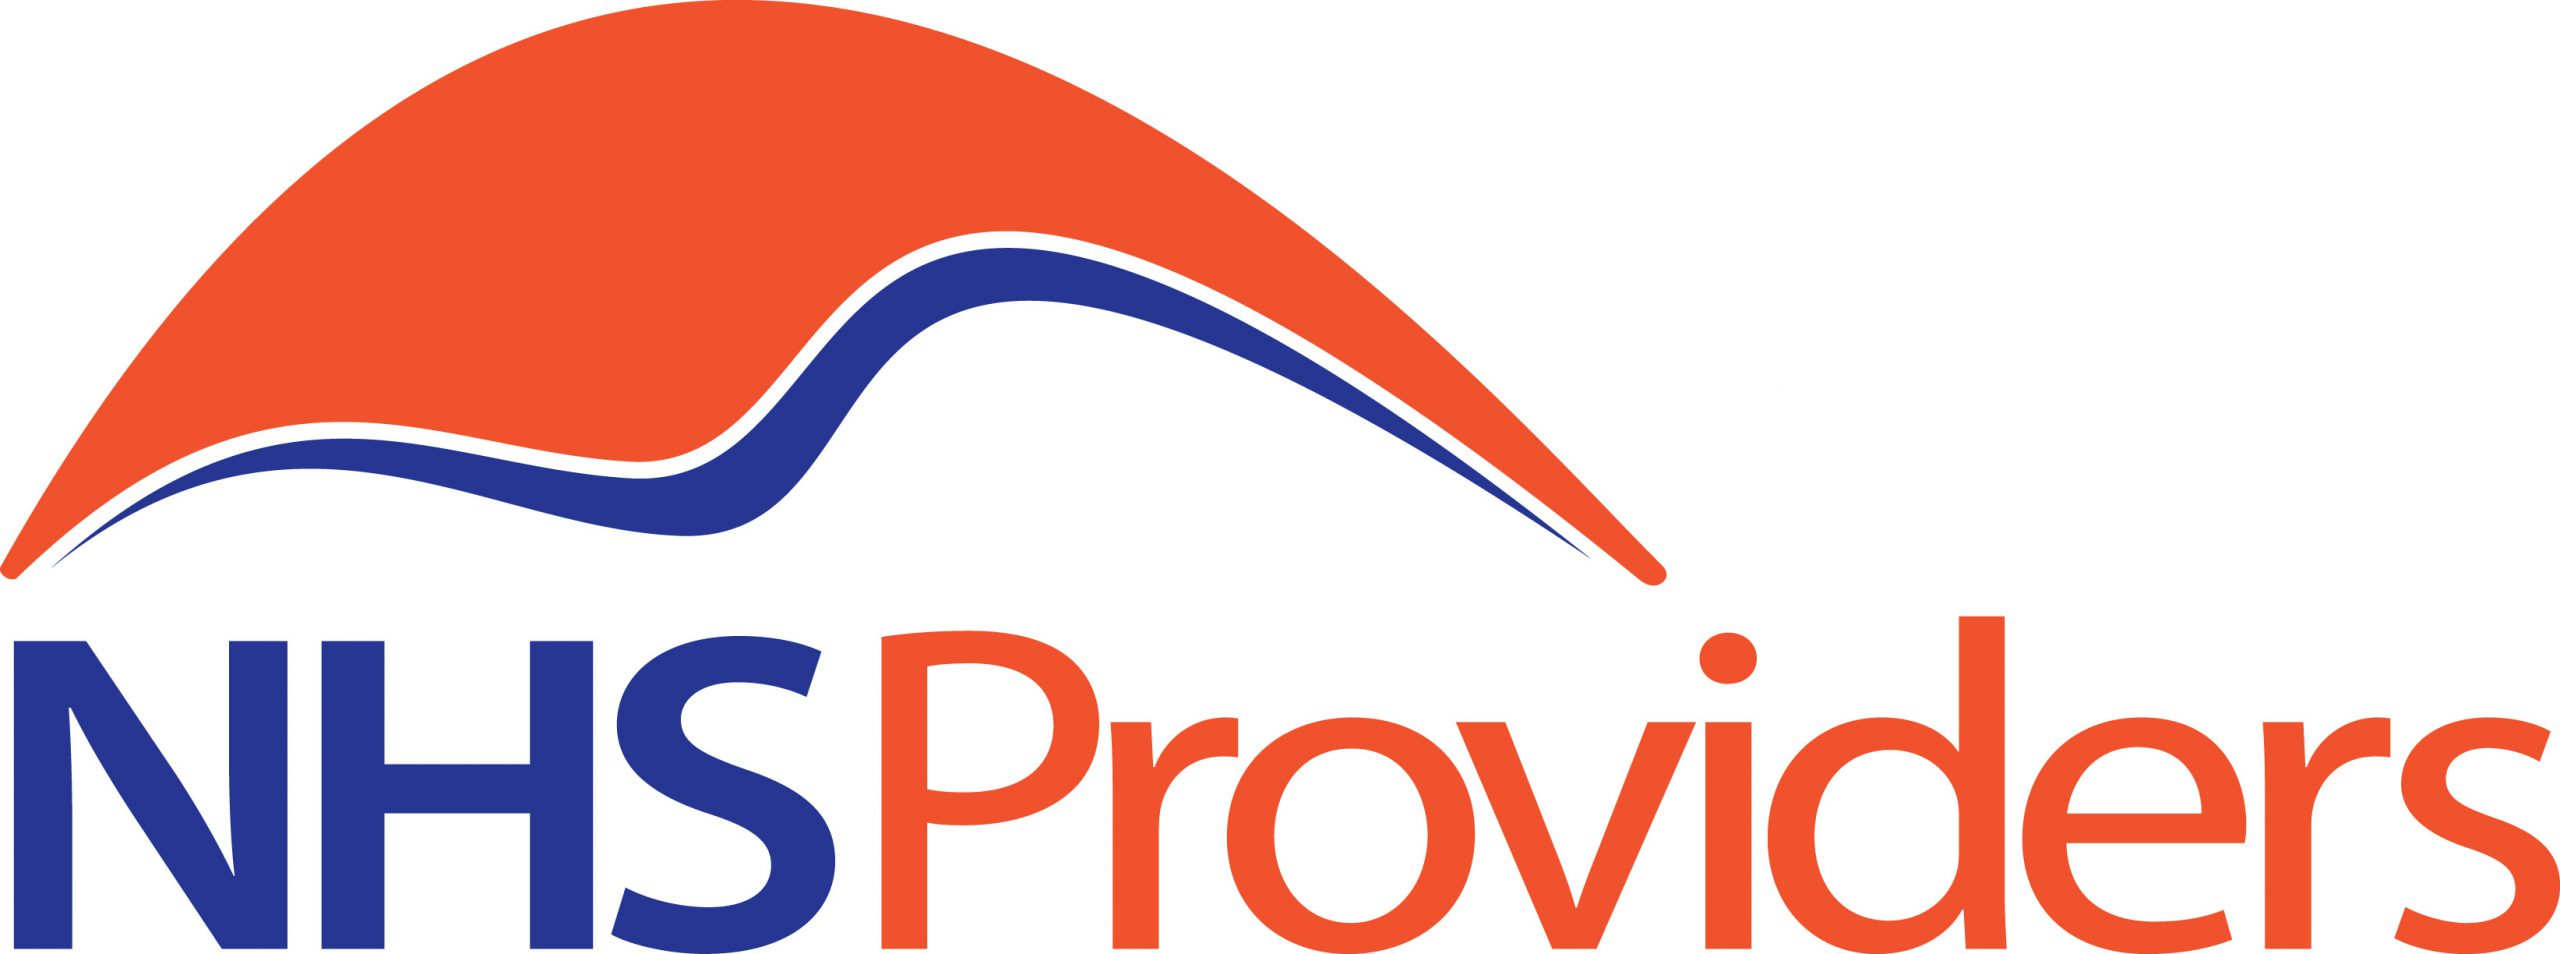 NHS Providers logo